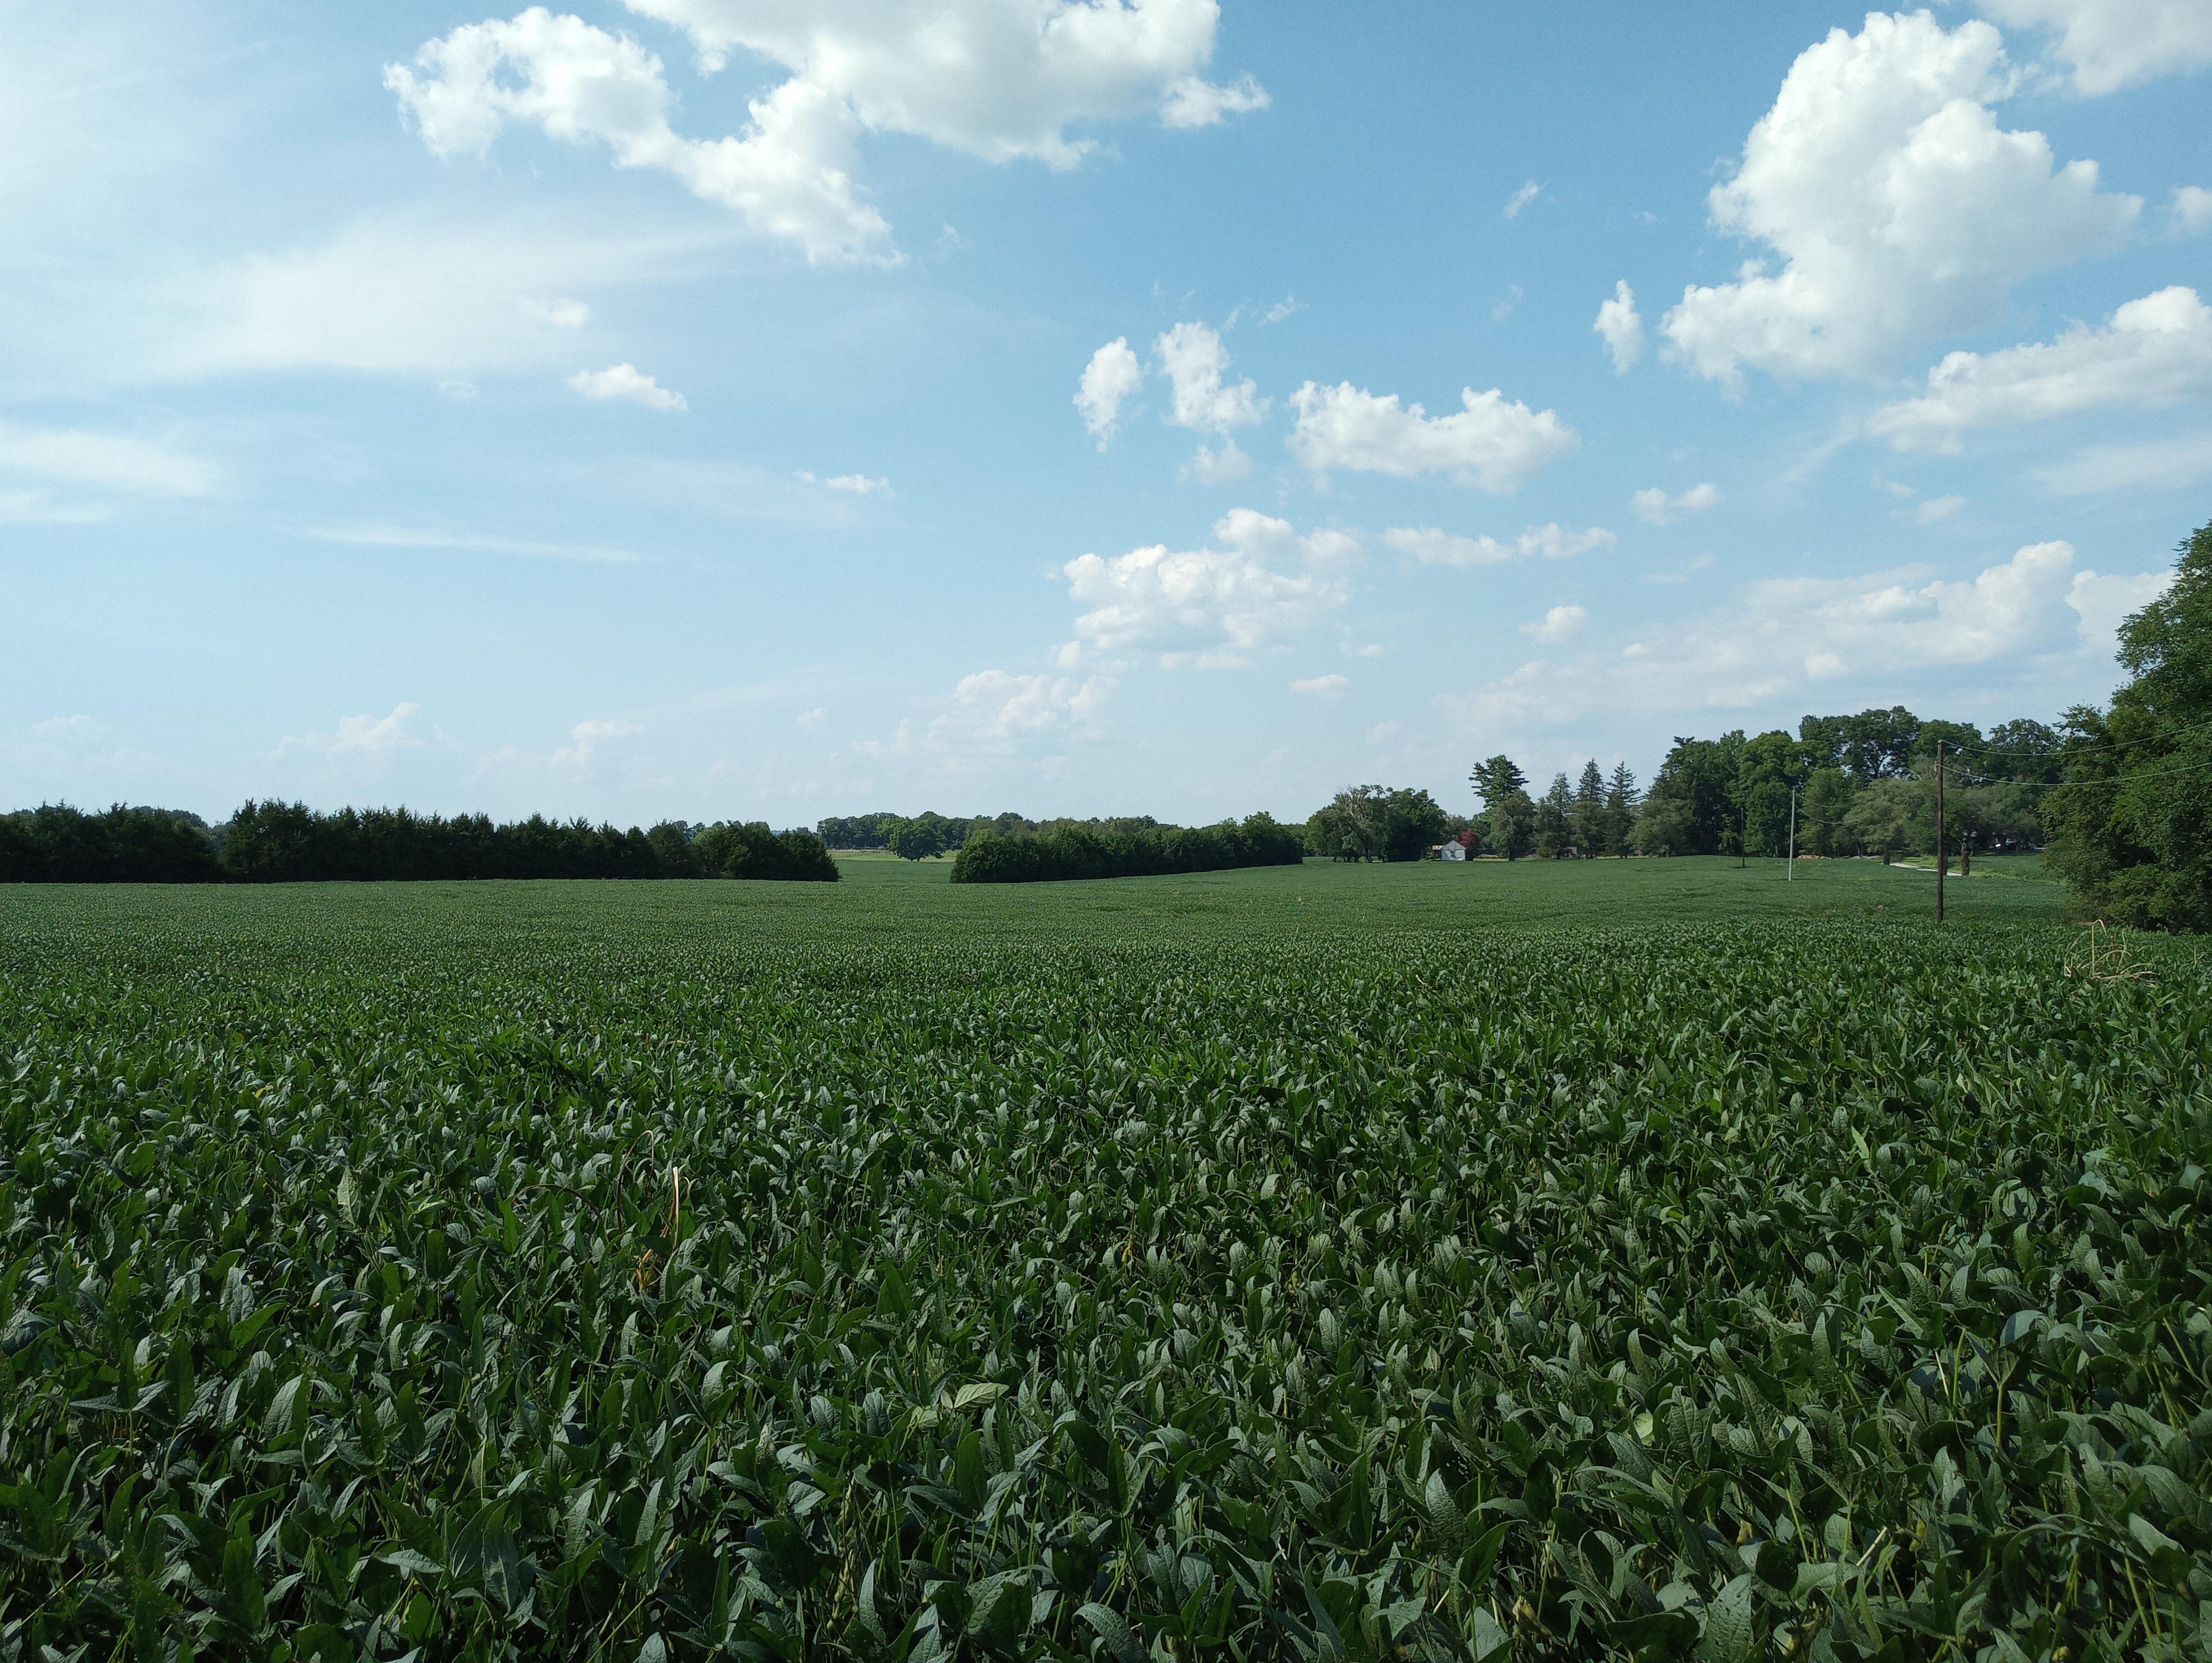 What will happen to the agricultural land in the path of the Mack Hatcher extension?